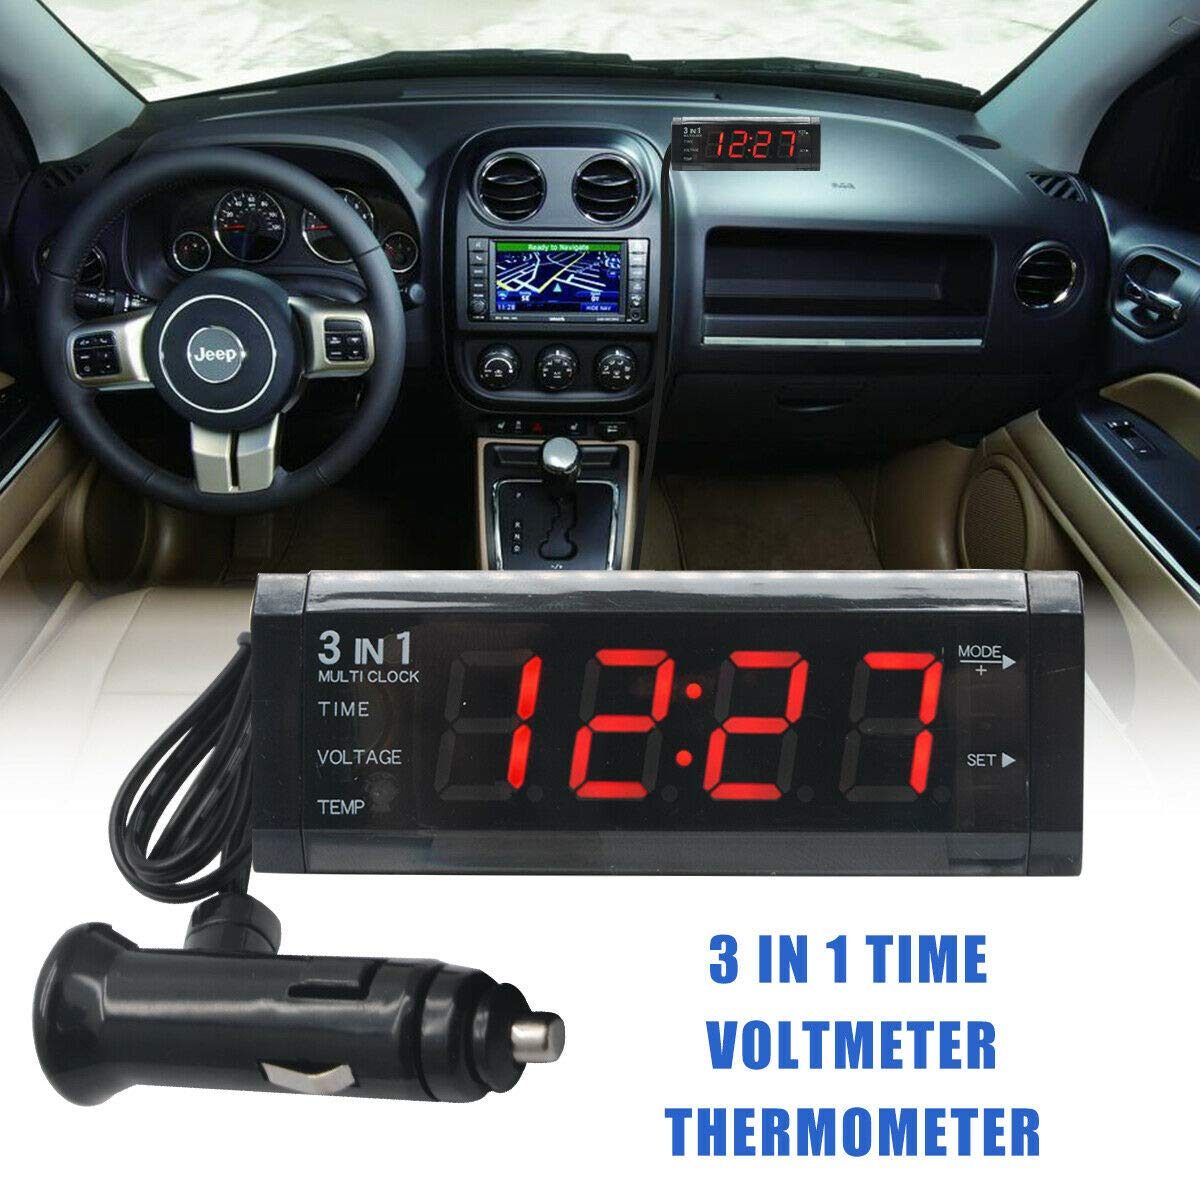 UTP 12V 3 in 1 Vehicle Car Kit Thermometer Clock LED Digital Display Voltmeter